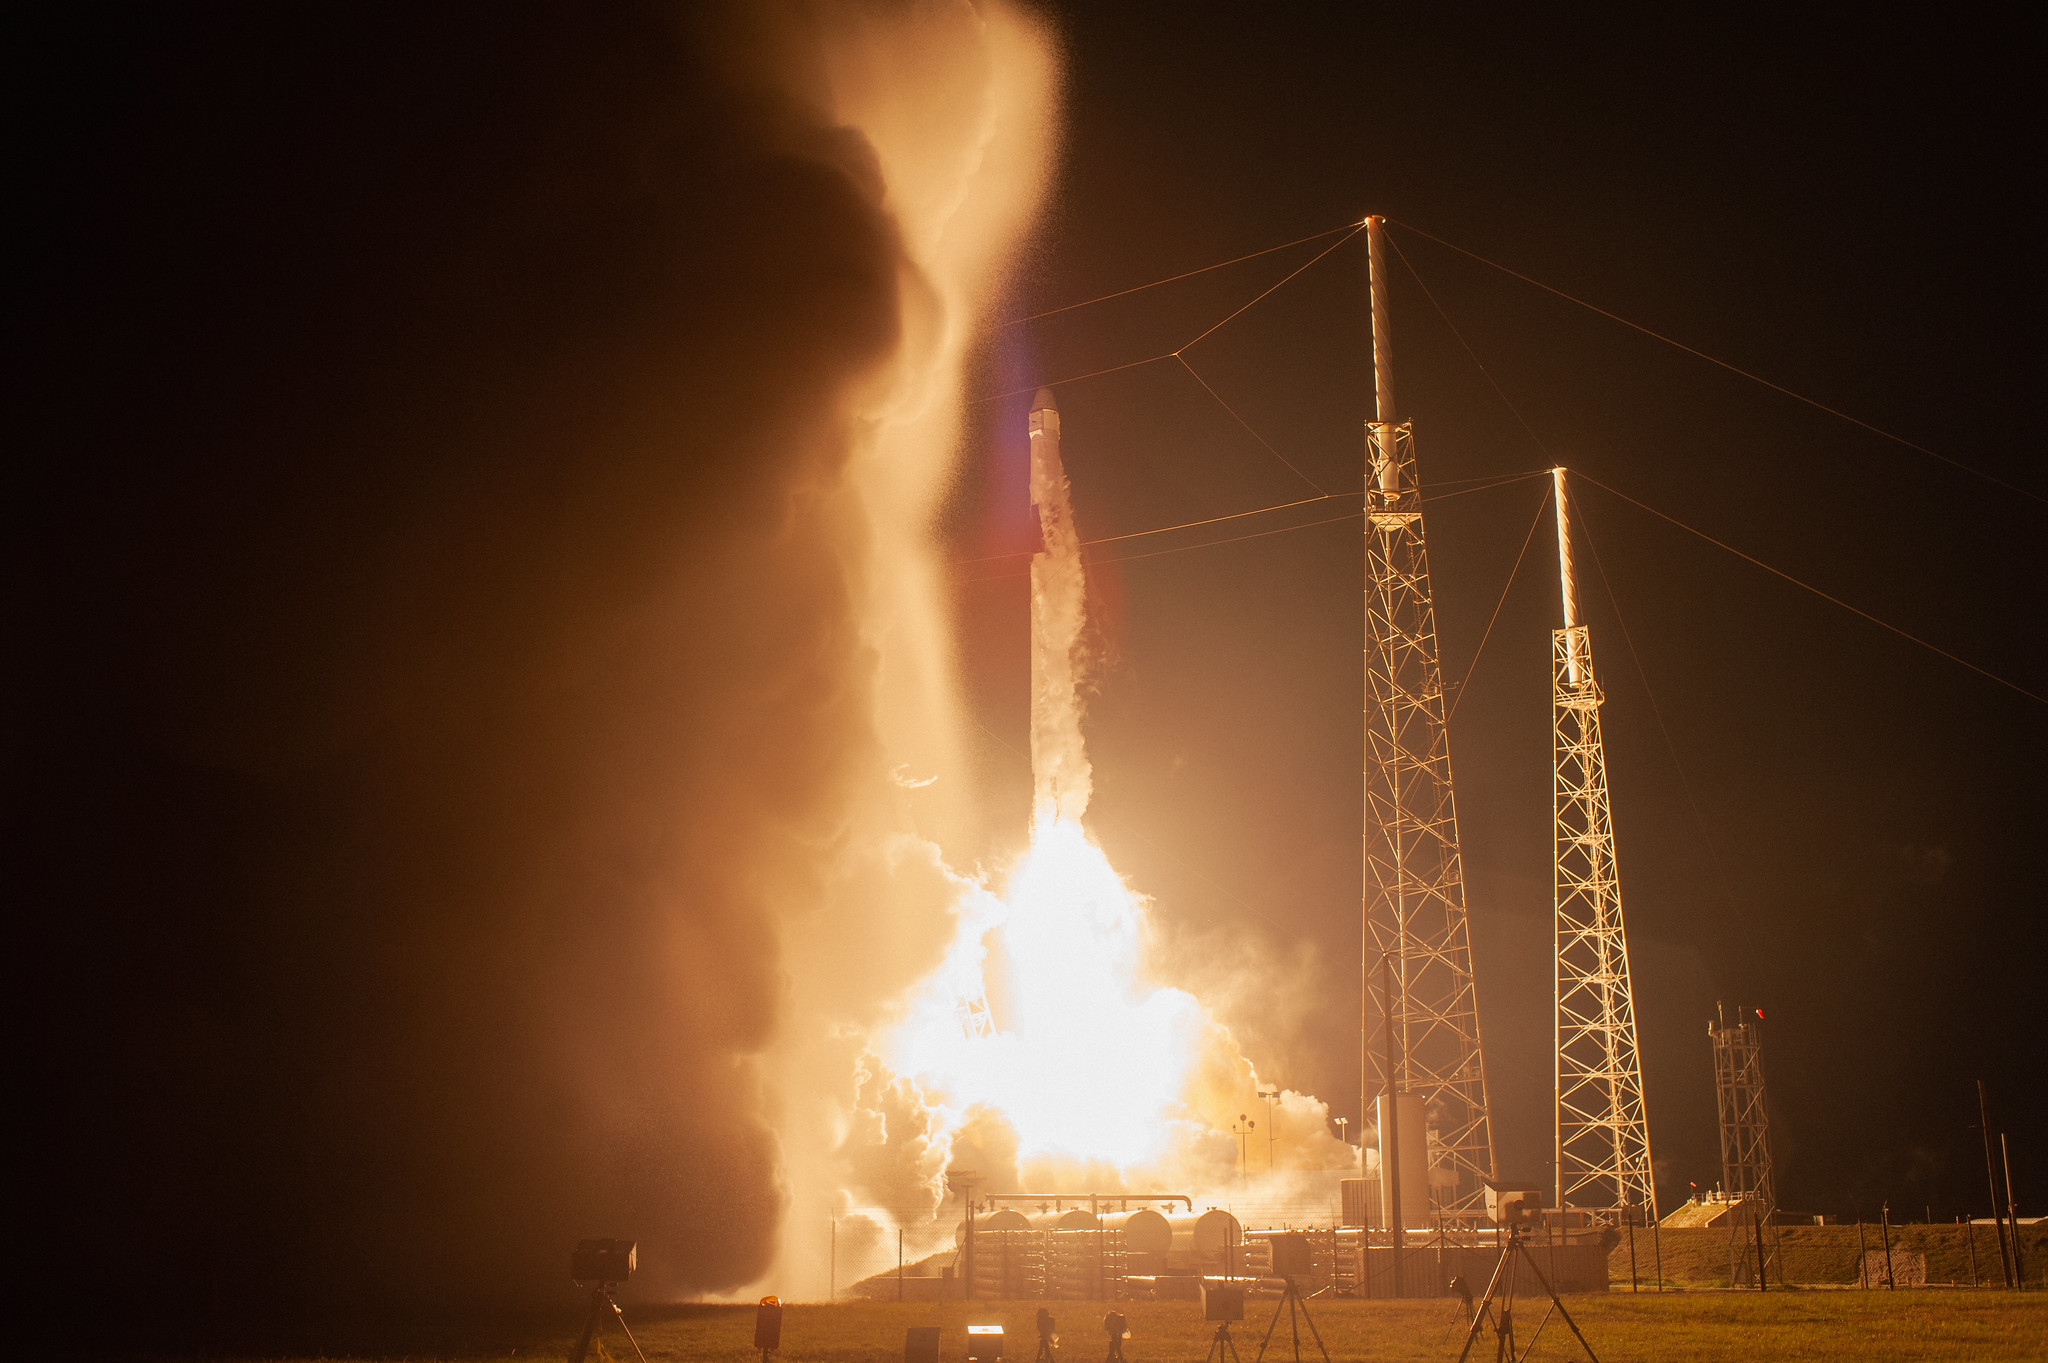 NASA to Broadcast Next Space Station Resupply Launch, Prelaunch Activities